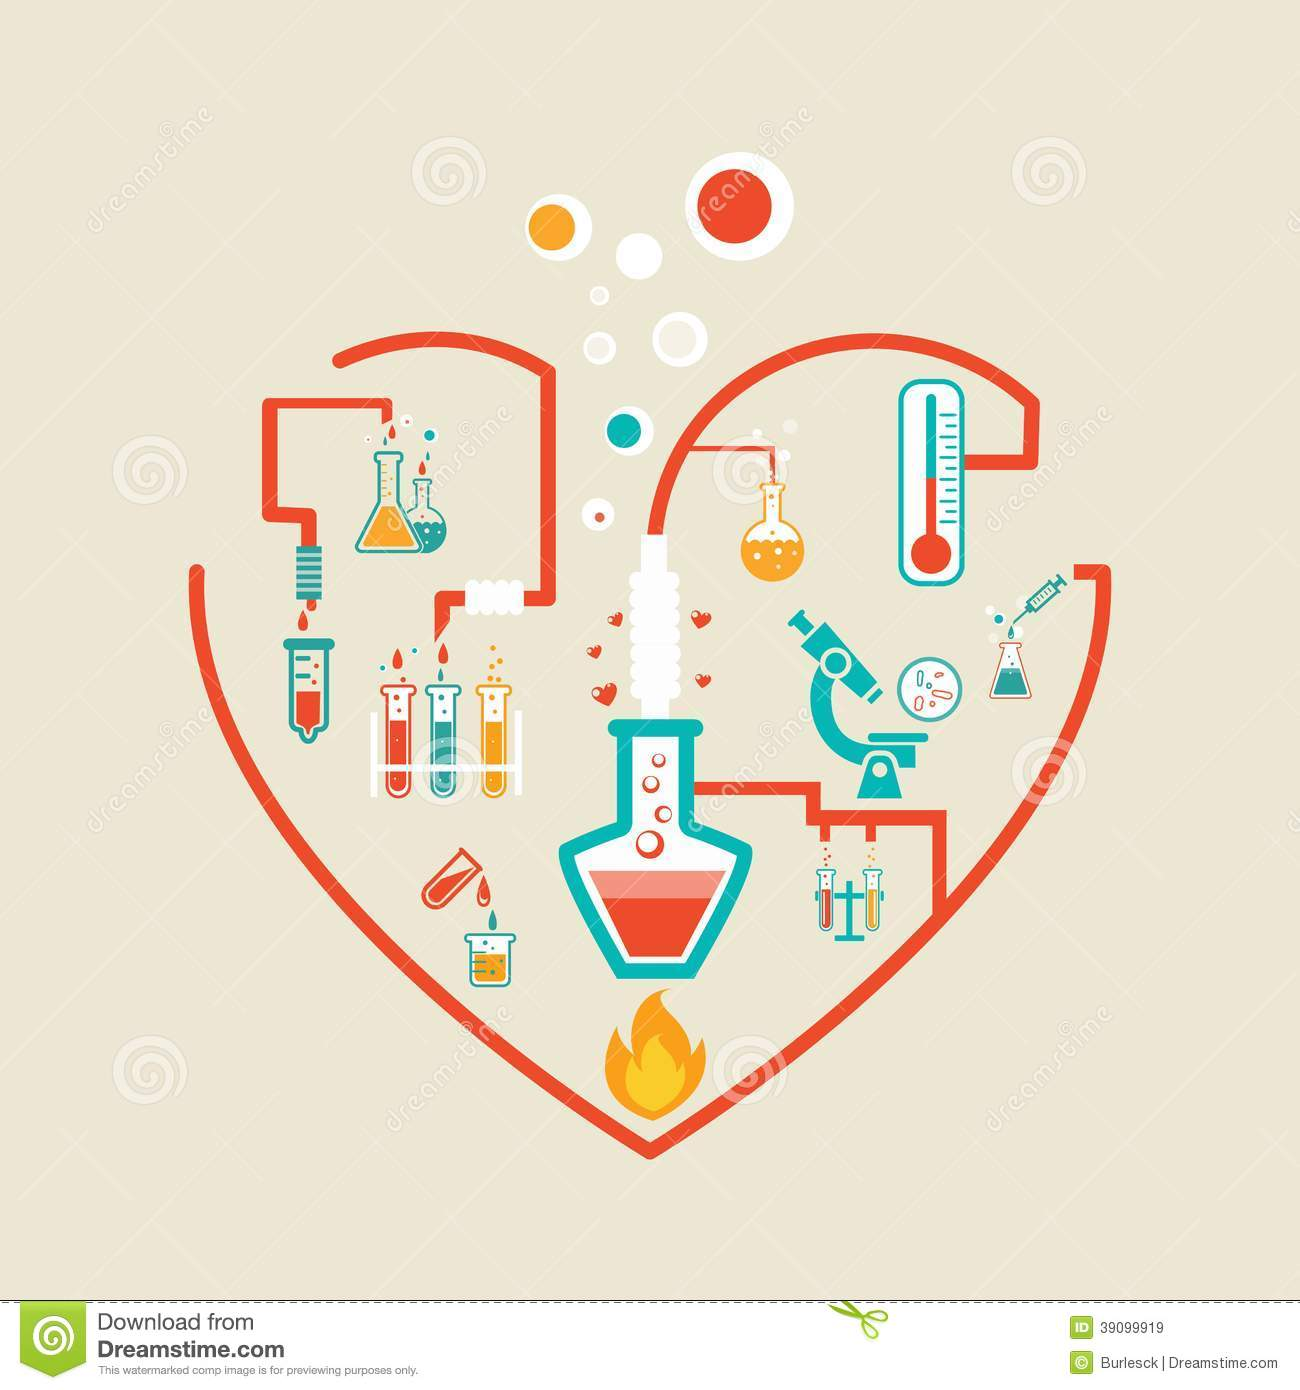 Test your love chemistry